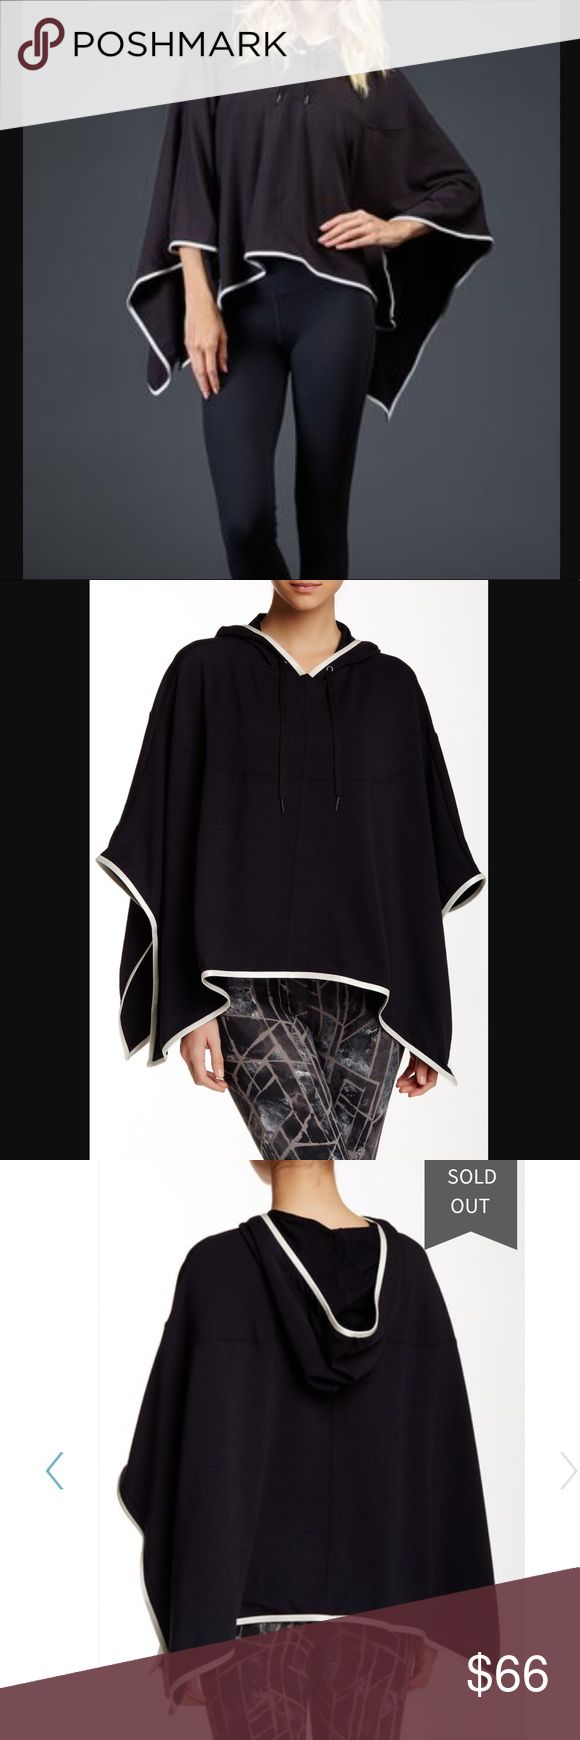 Zobha activewear hunter french terry black cape Brand new with tags. Retails at $120! Sold out on the Nordstrom website and online everywhere. Fits true to size - an adorable black cape! Very versatile! Zobha activewear hunter french terry black cape. Zobha Jackets & Coats Capes